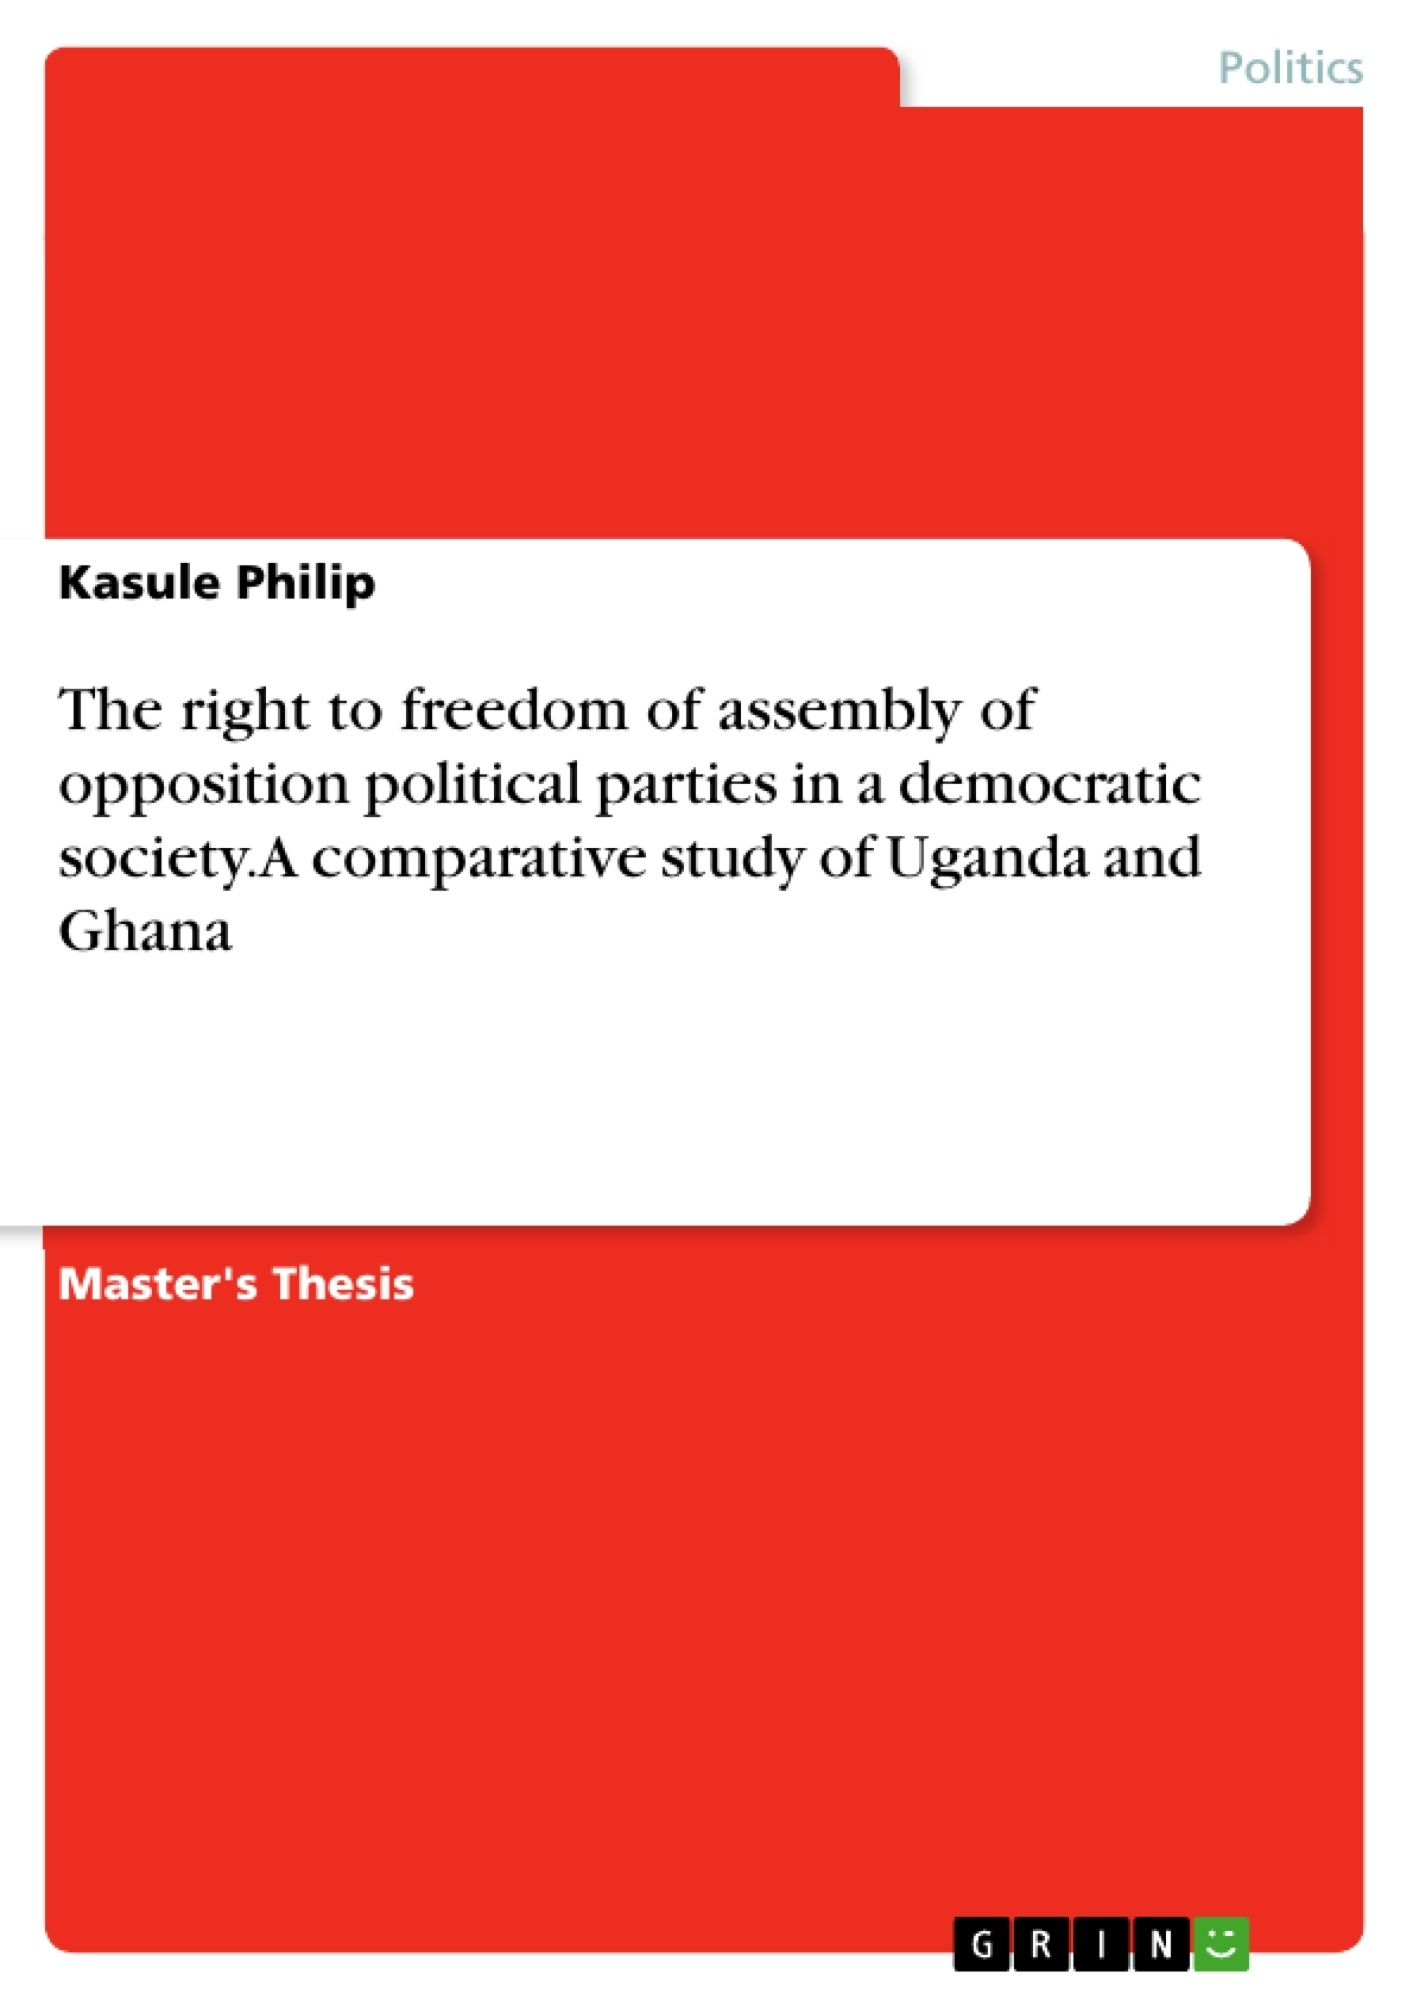 Title: The right to freedom of assembly of opposition political parties in a democratic society. A comparative study of Uganda and Ghana